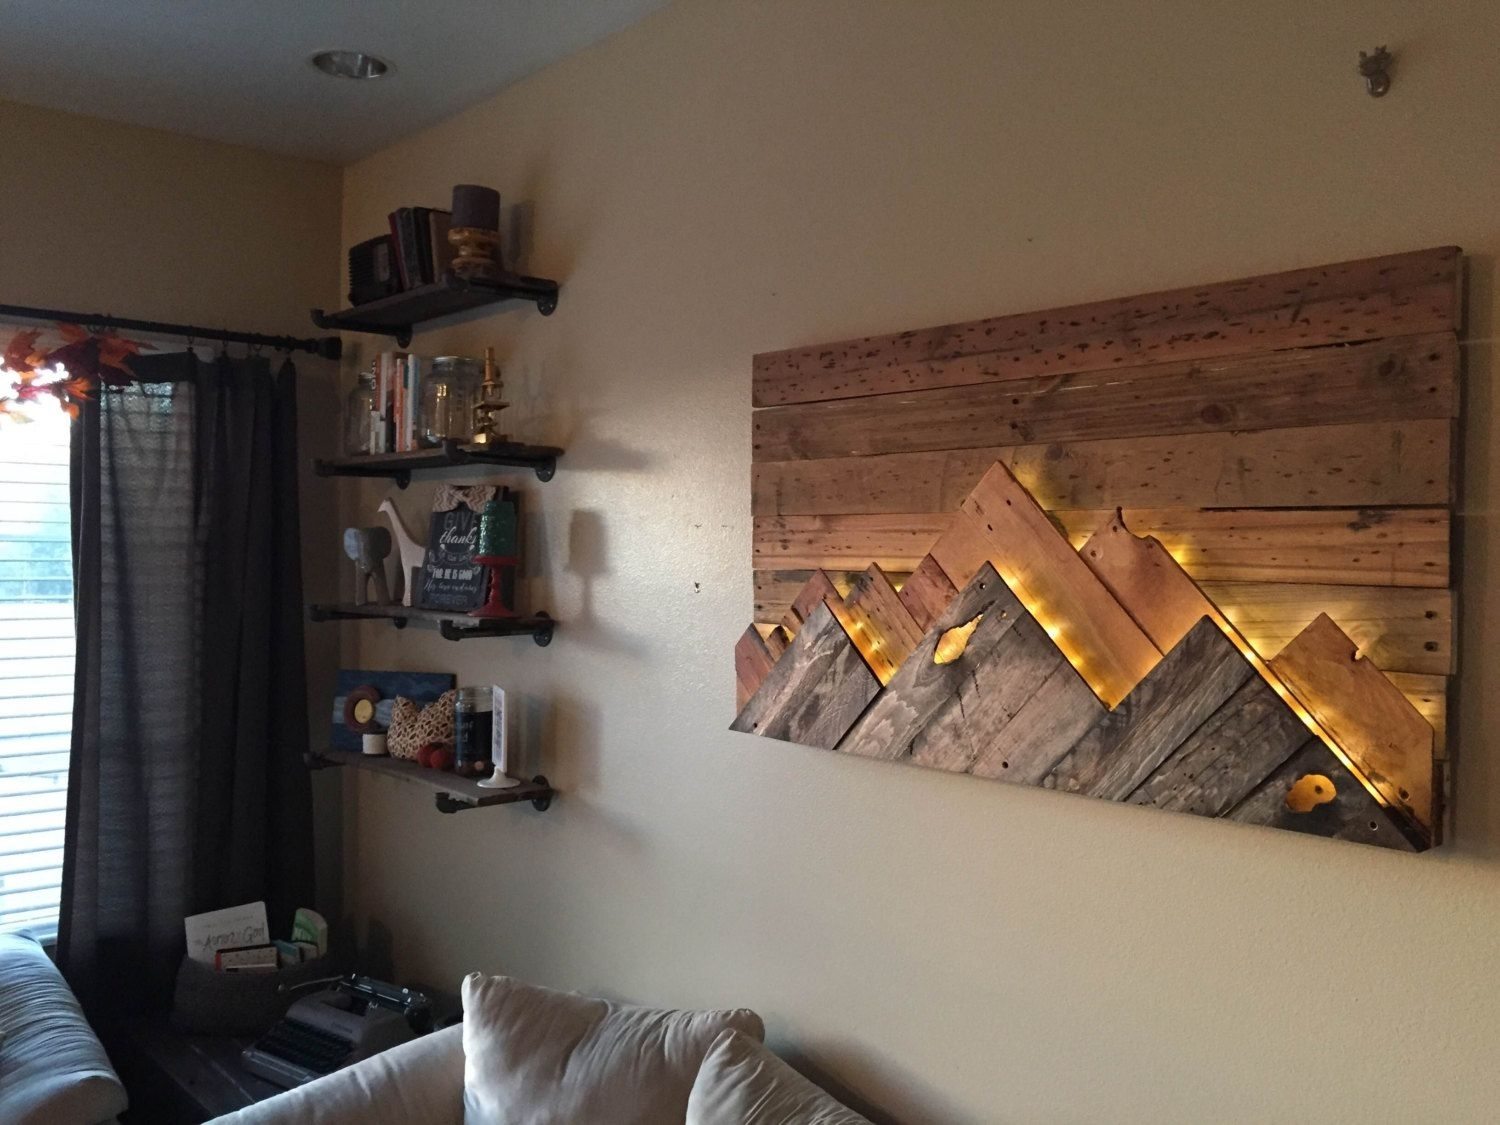 Wooden Mountain Range Wall Art | Mountain Range, Ranges And Walls In 2017 Wall Accents With Pallets (View 15 of 15)